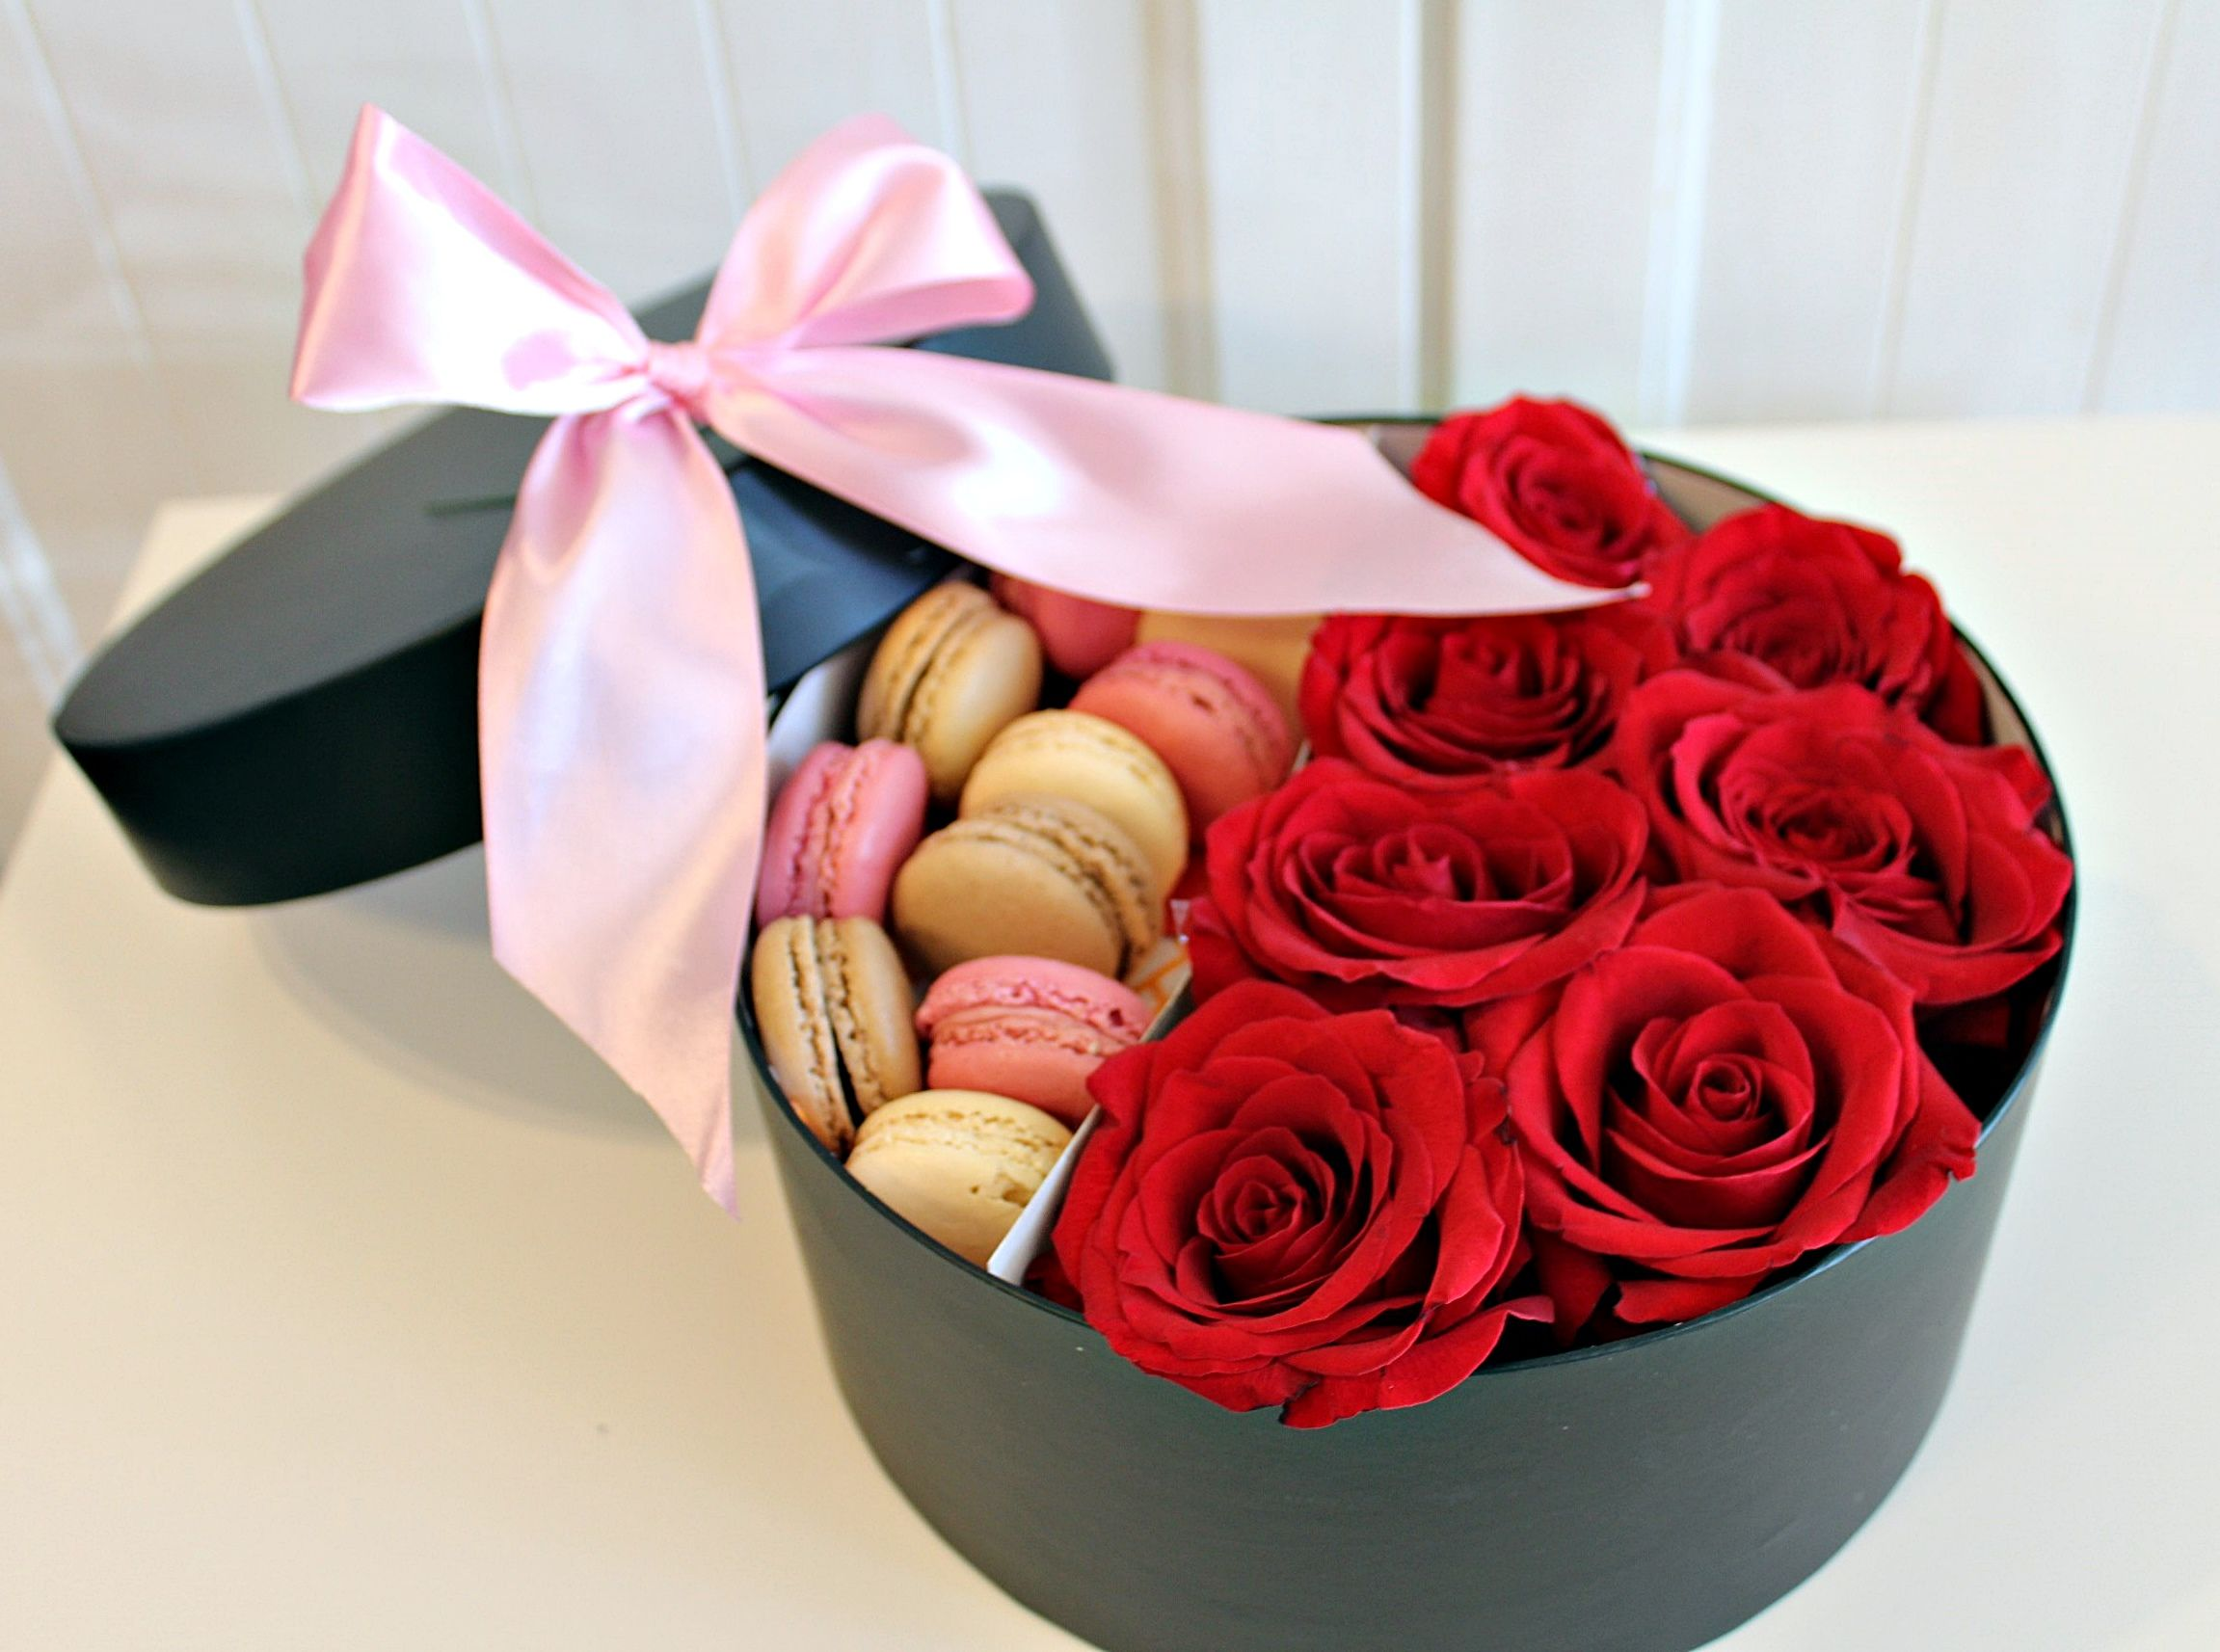 Flowers in a box boxed flowers chicago roses macaroons www flowers in a box boxed flowers chicago roses macaroons flowersbygeo flowers delivery chicago luxury flowers izmirmasajfo